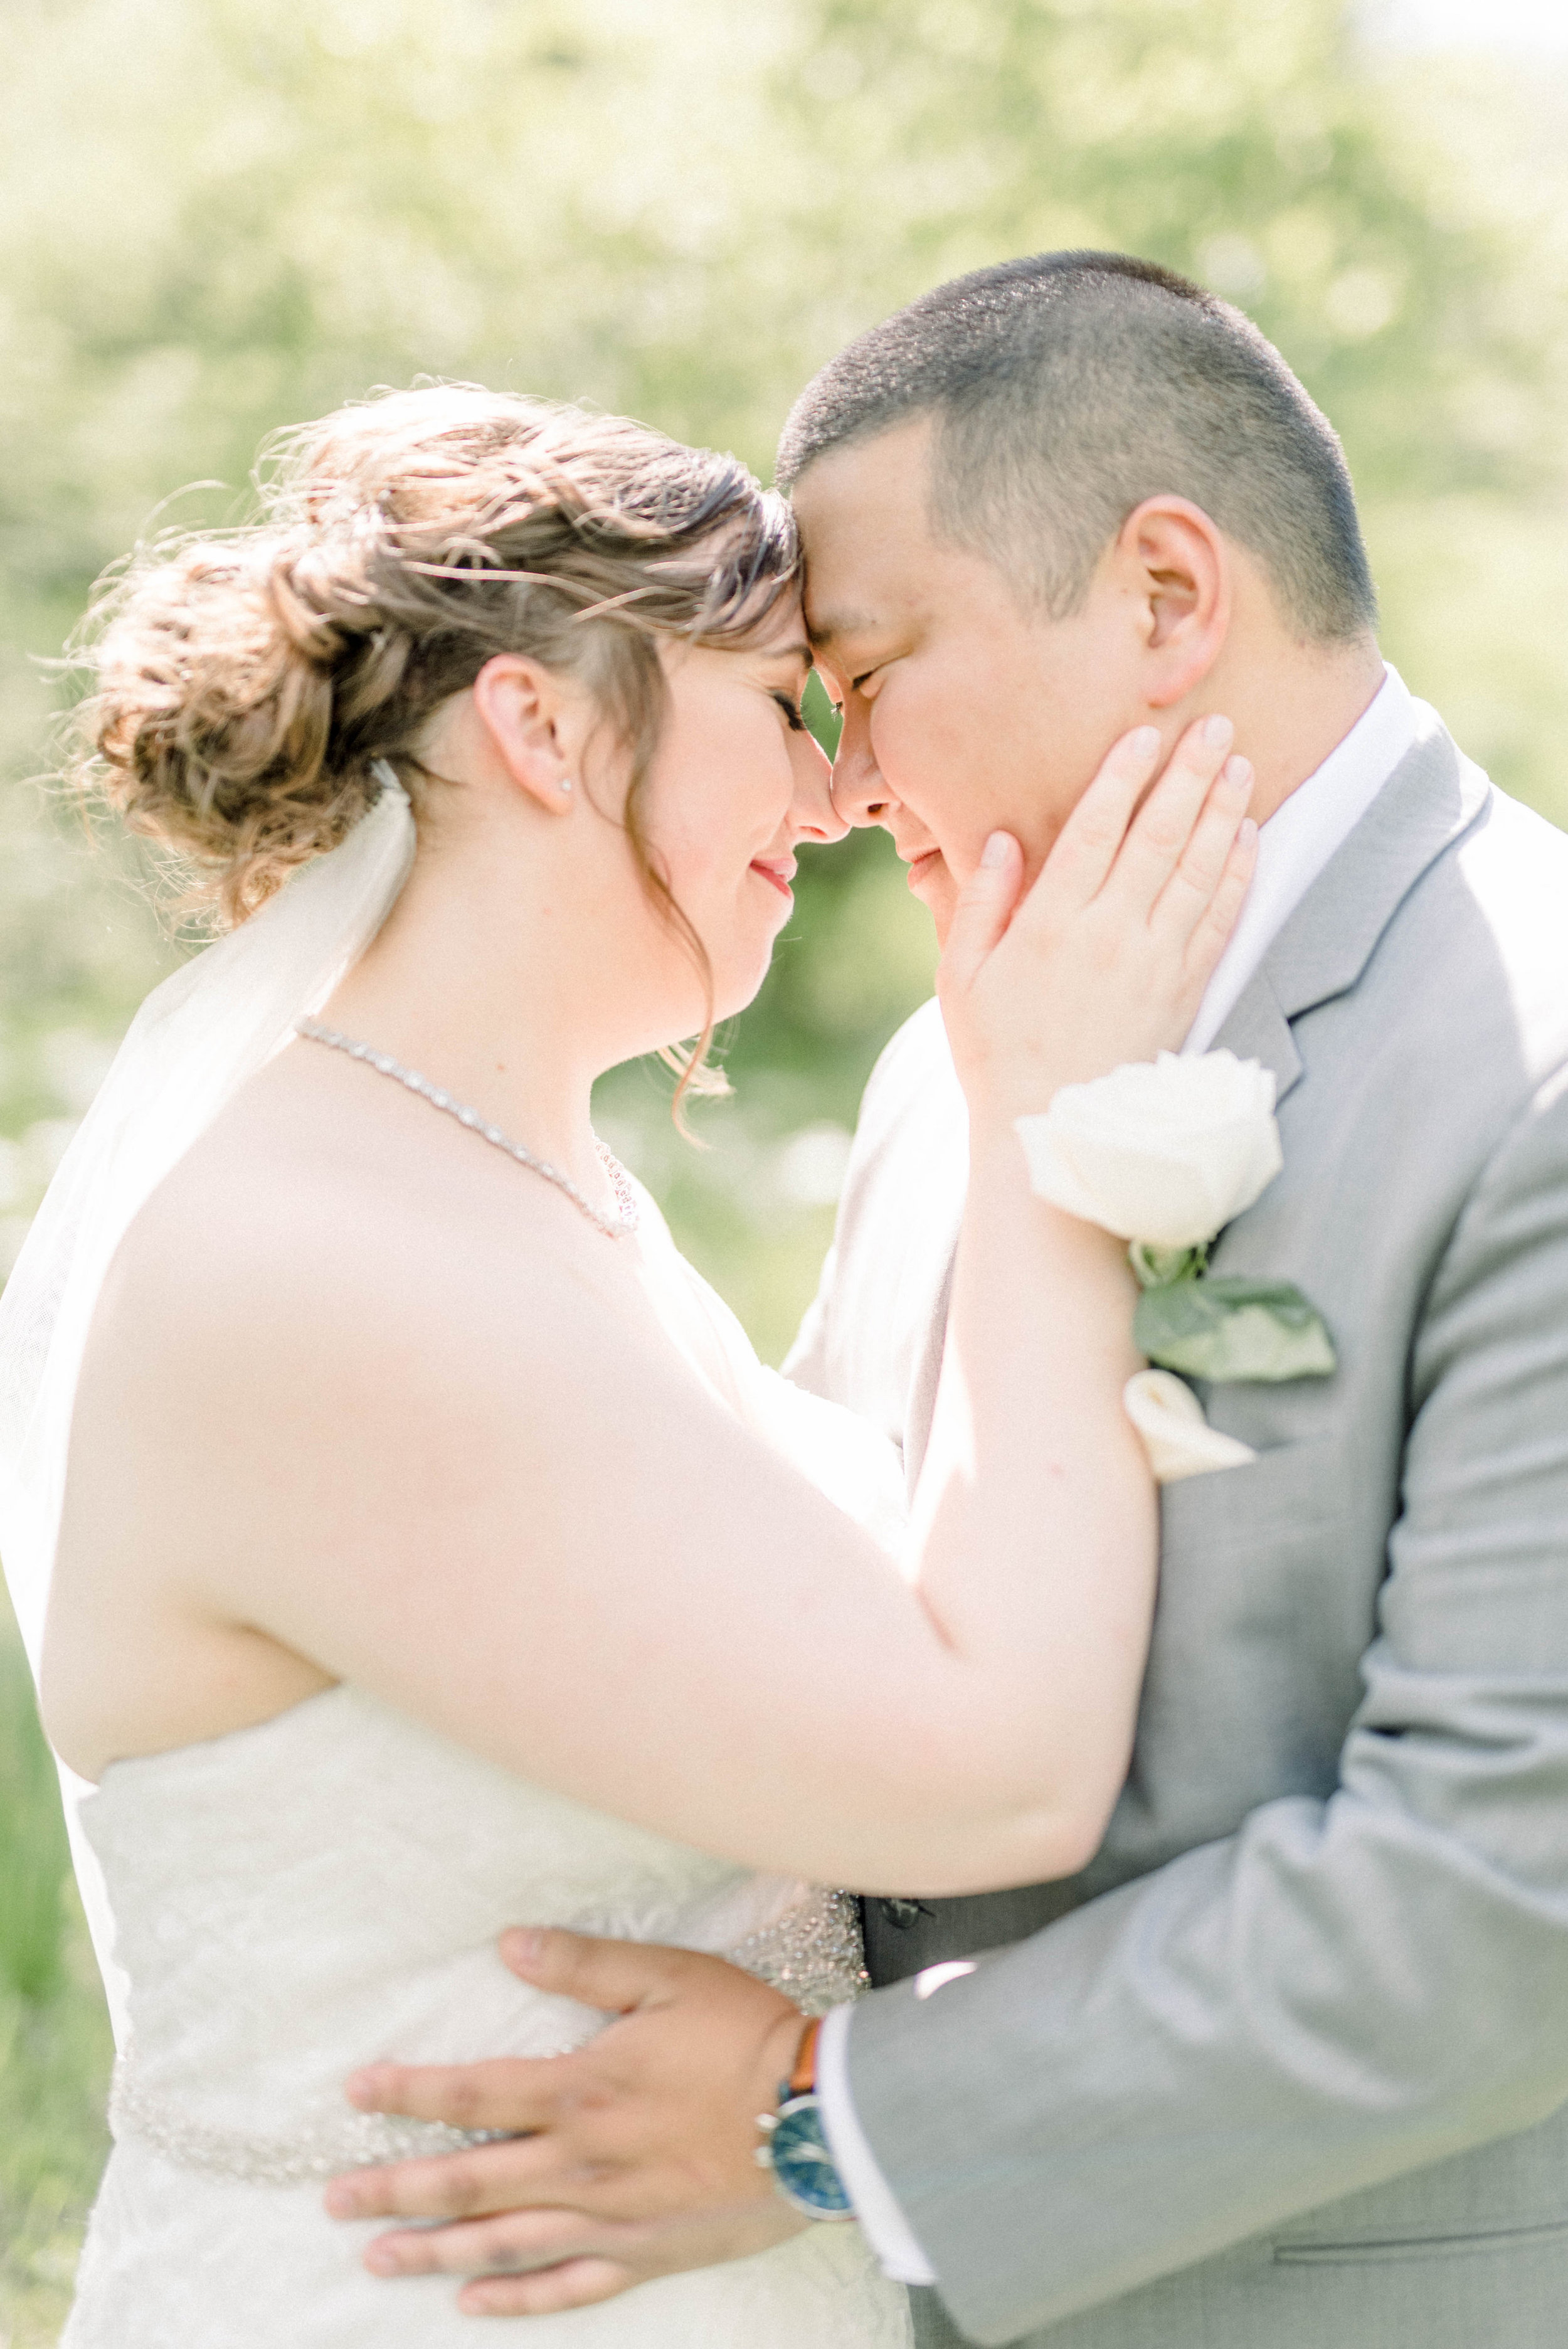 A St. Louis Love Story at Haue Valley